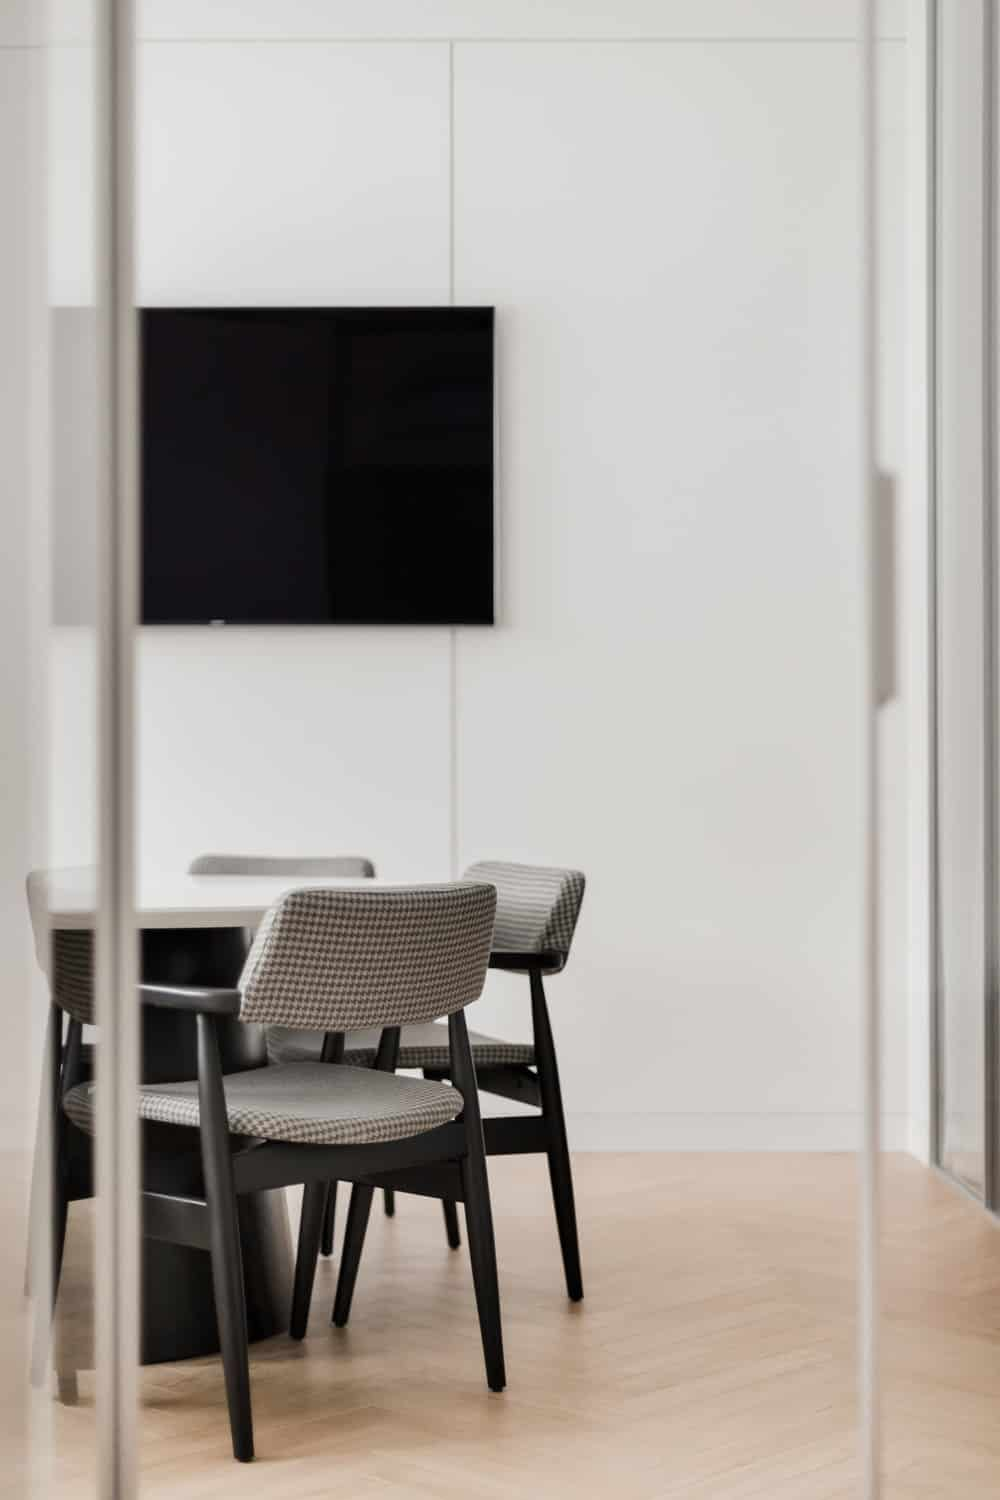 The conference room next room has a large wall-mounted TV that stands out against the light beige wall.